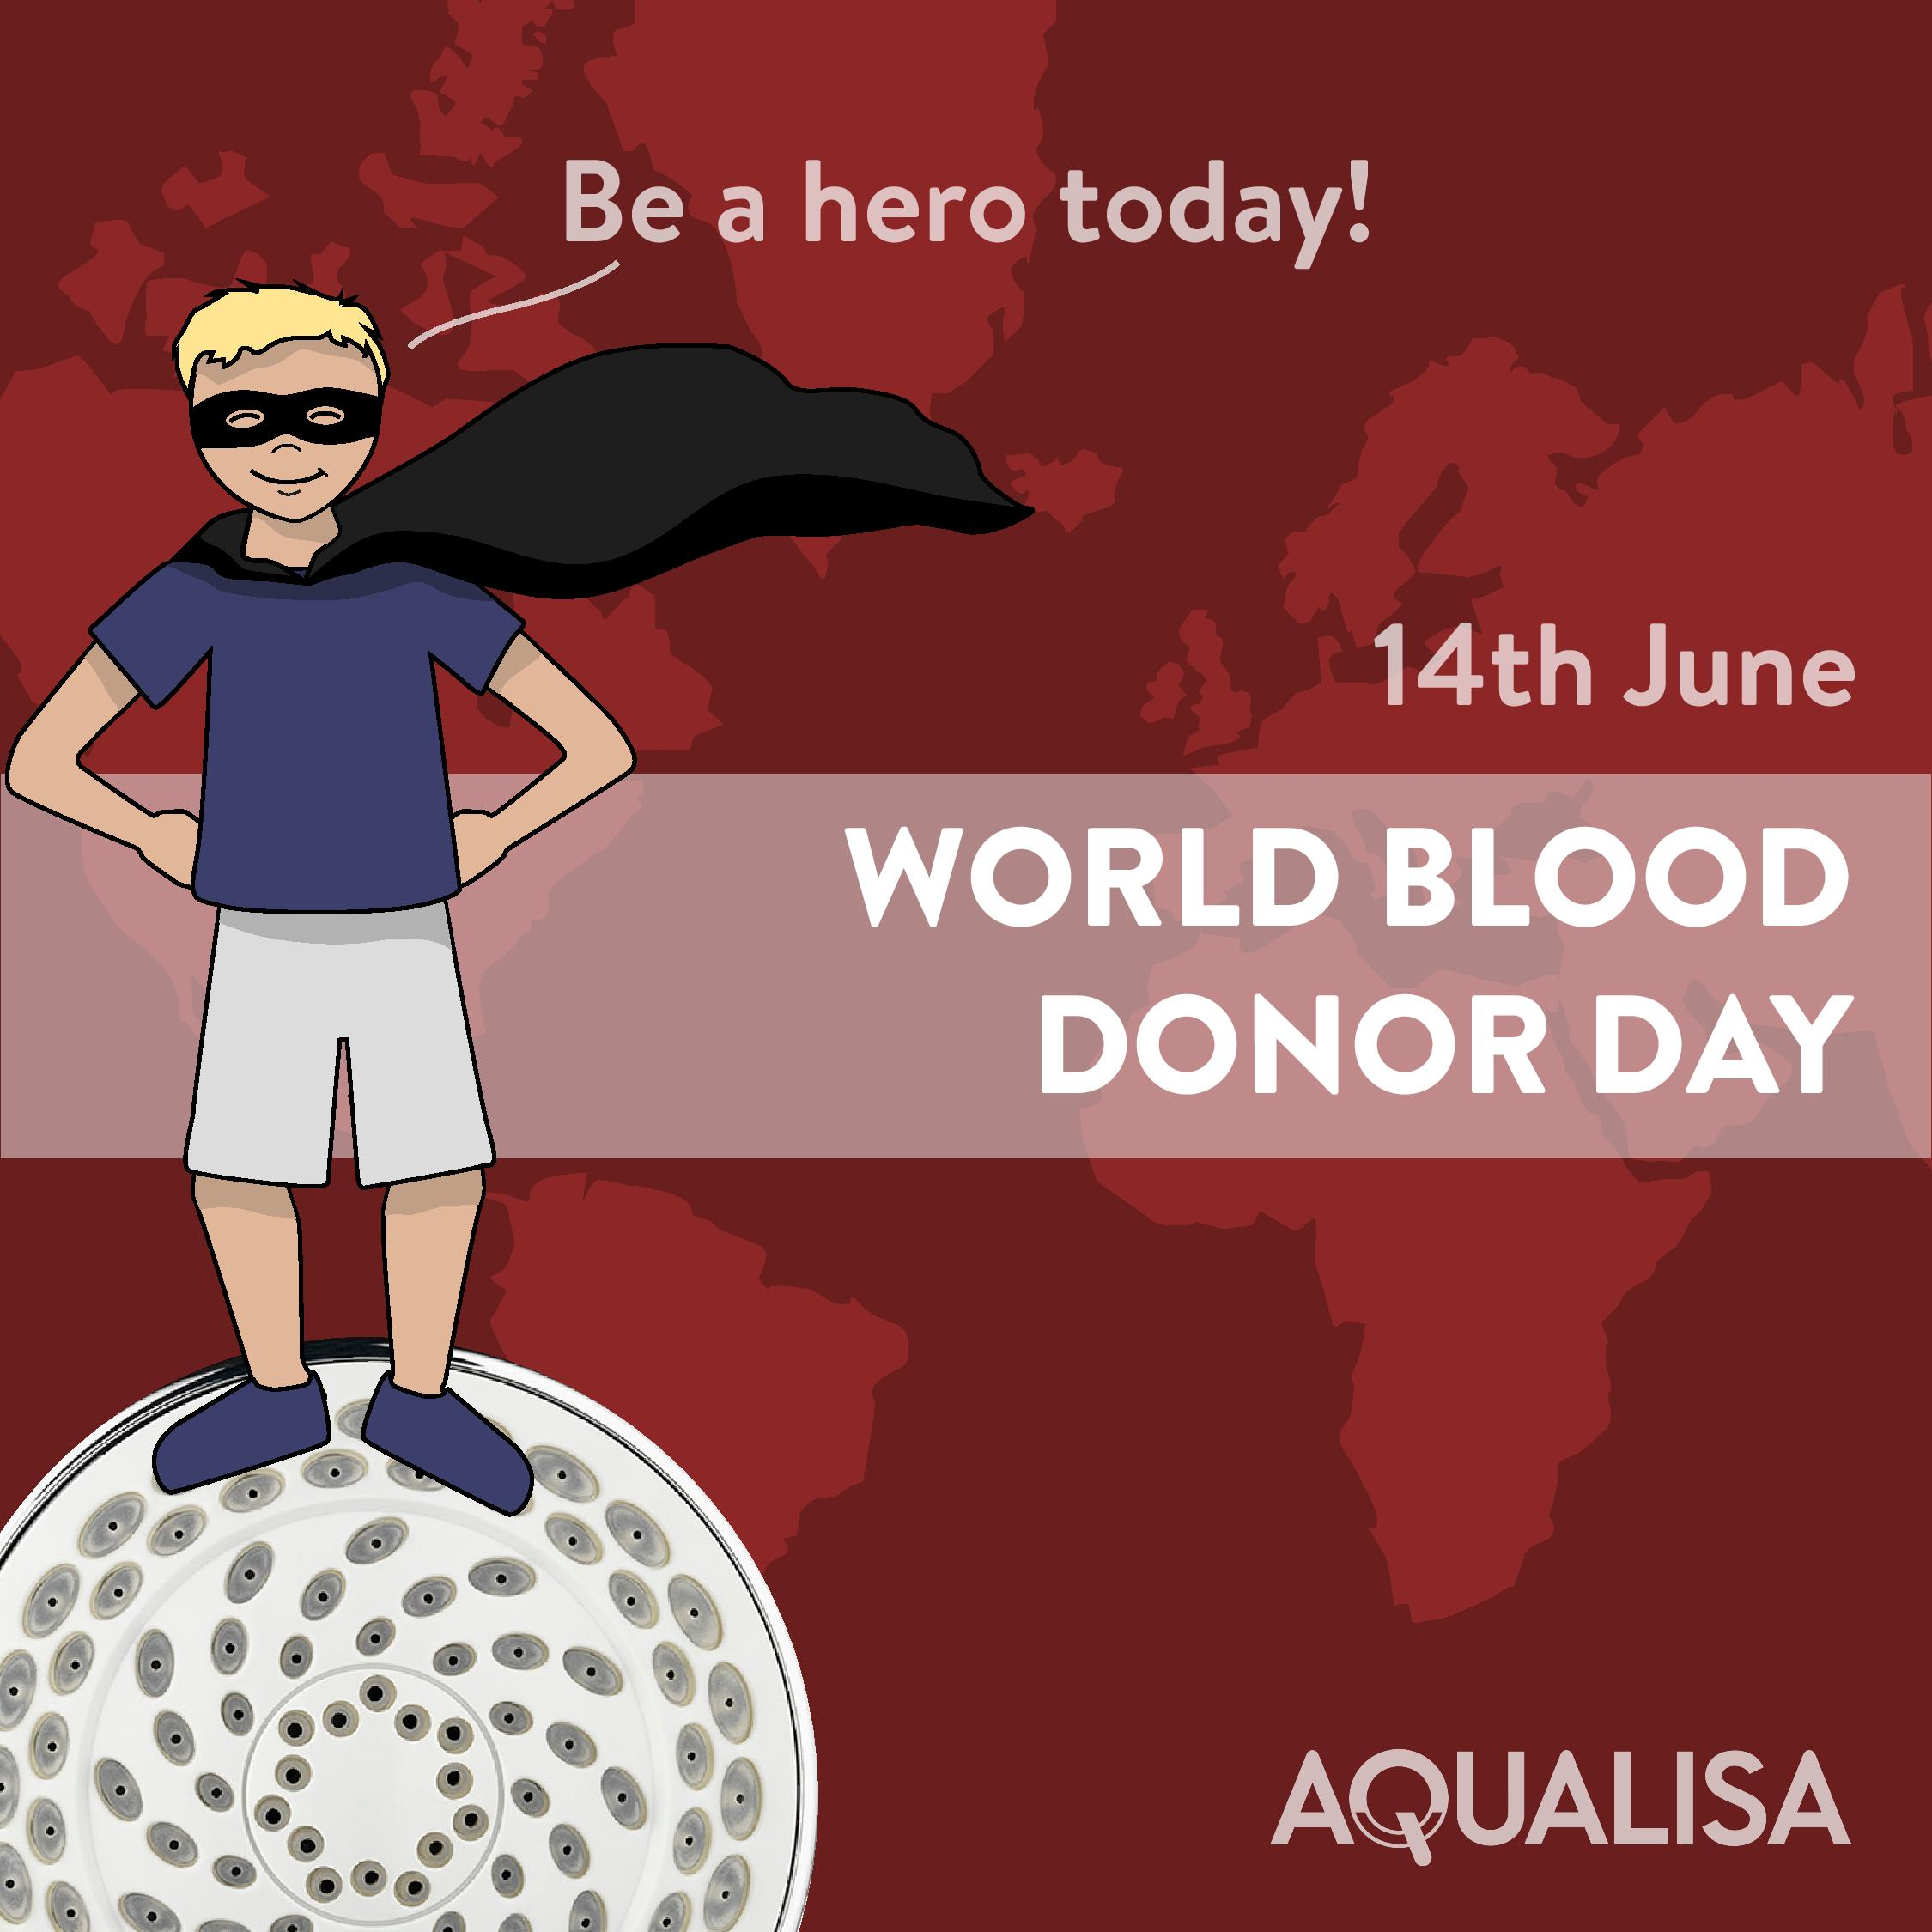 Be a hero this world blood donor day